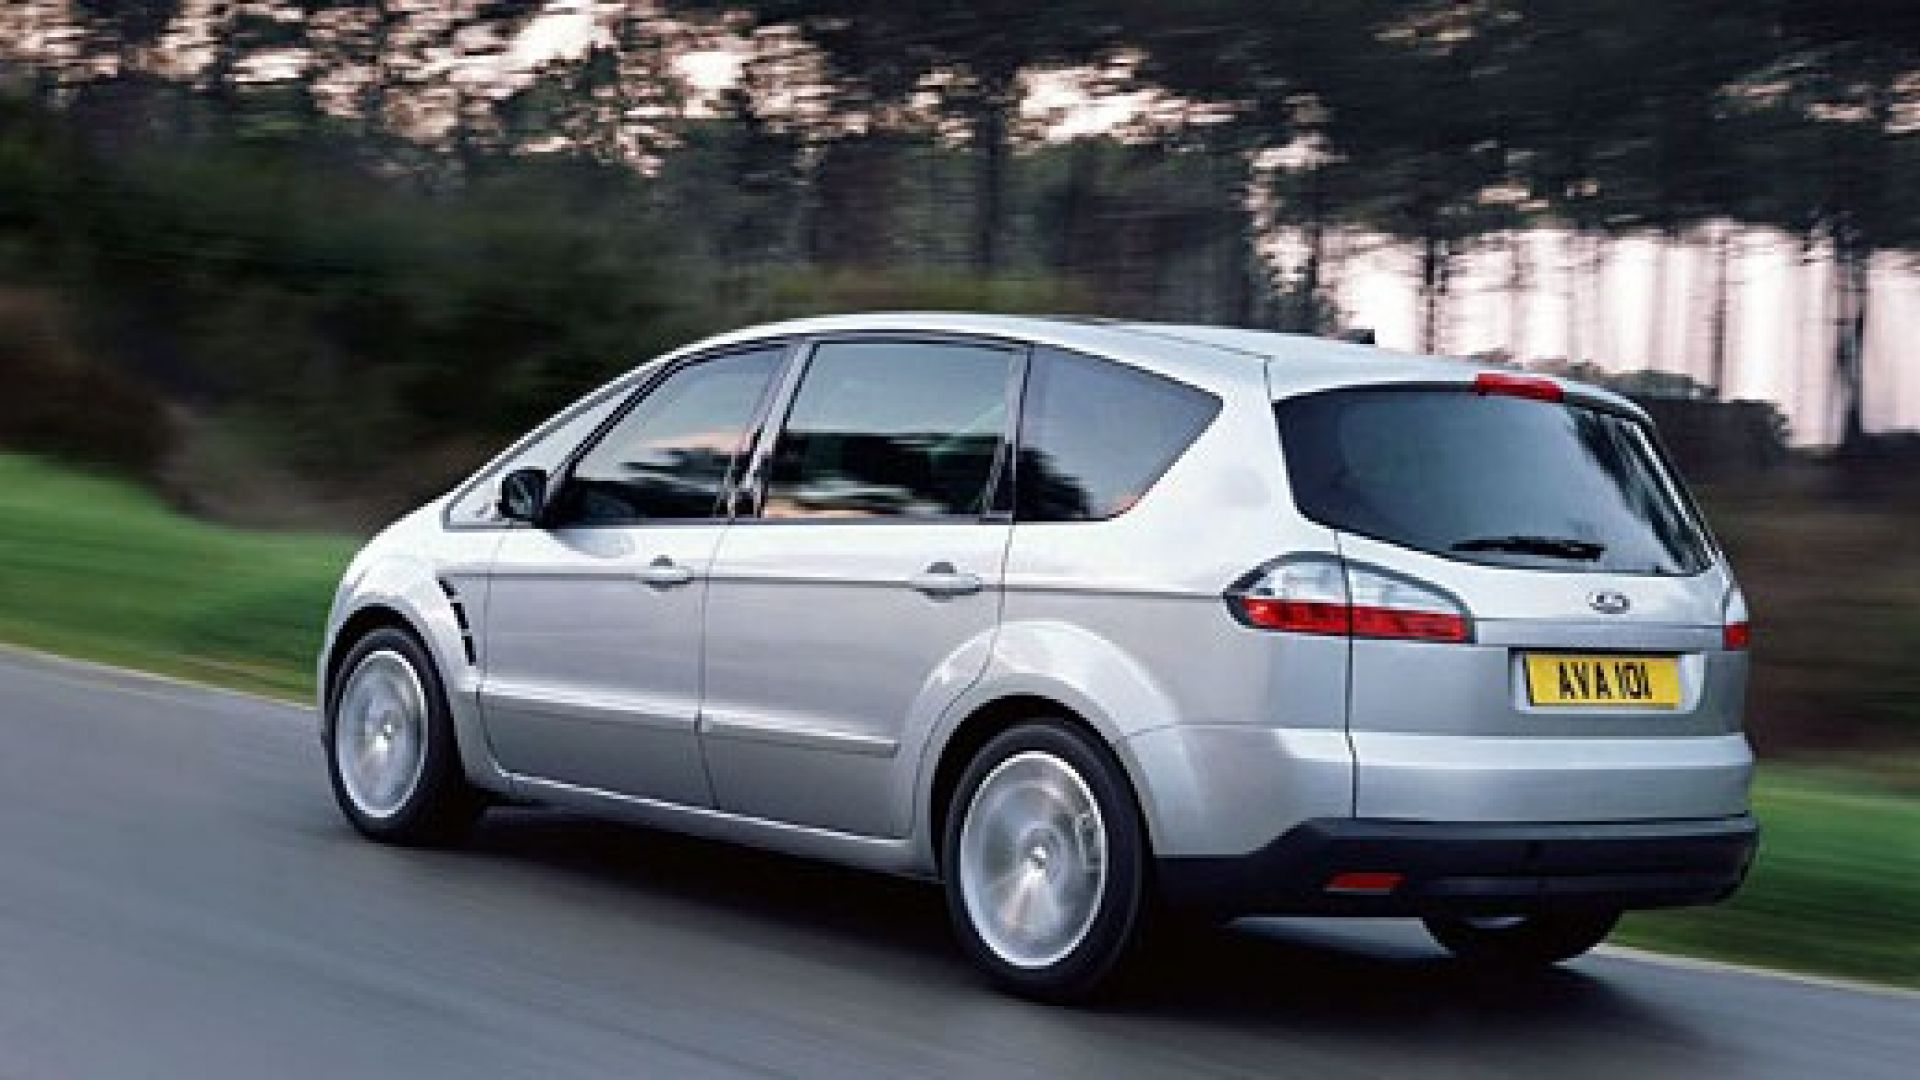 Anteprima:: Ford S-Max - MotorBox